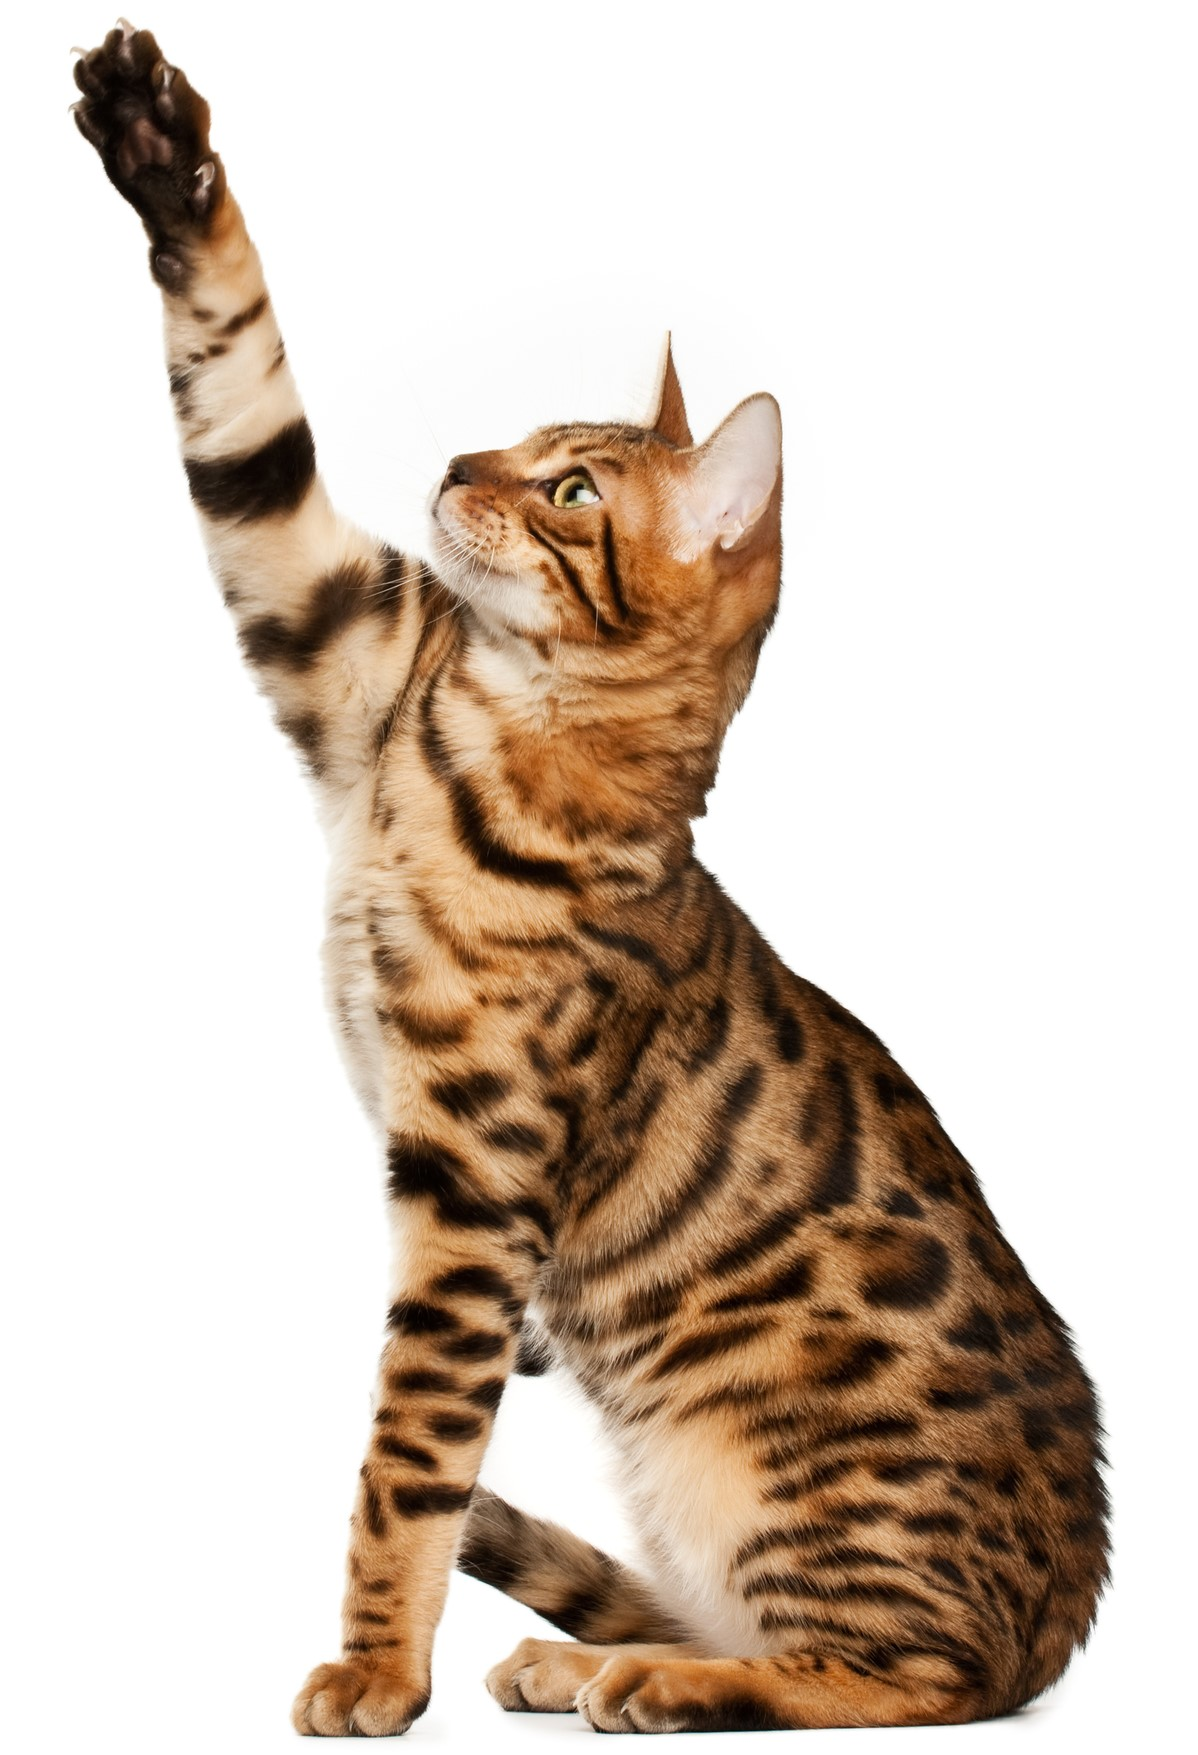 Bengal Cat, Bengal kitten, Short haired cat breed